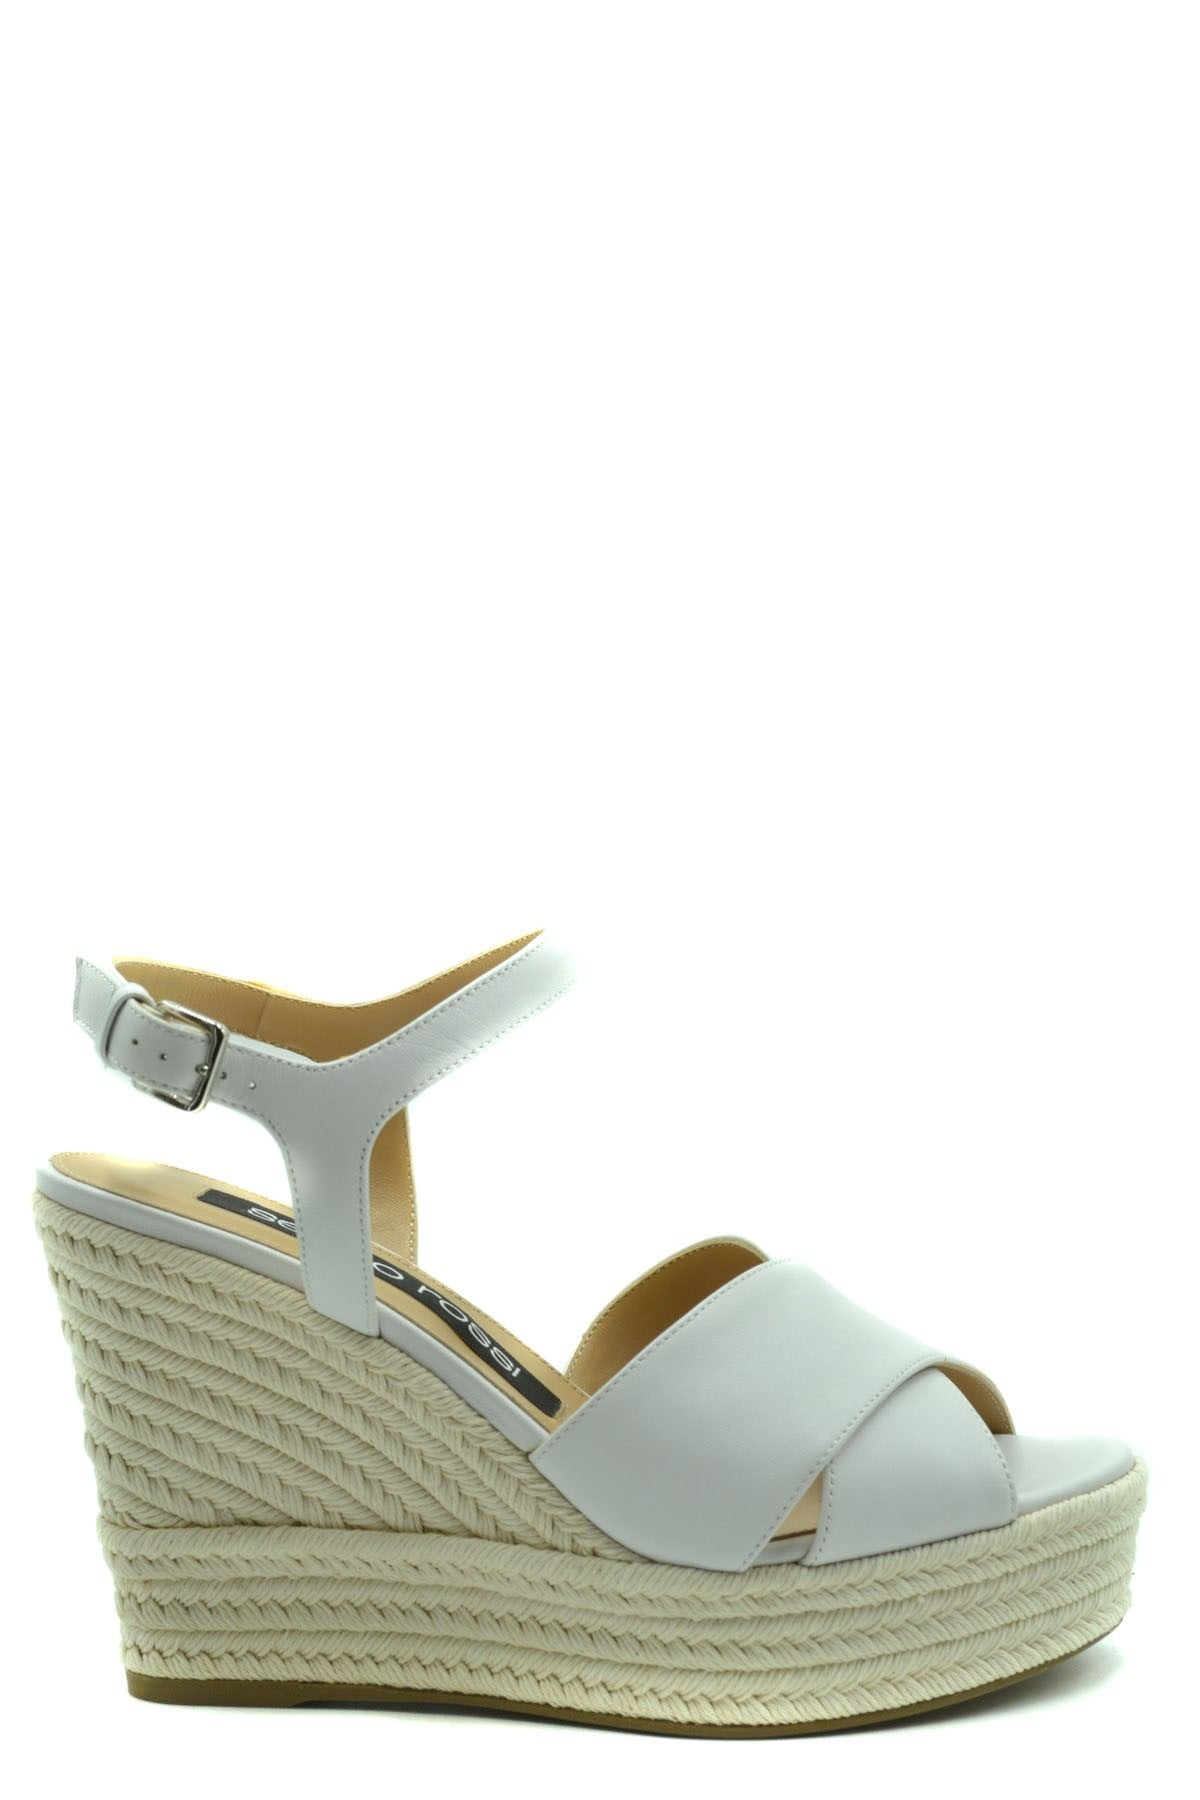 Shoes Sergio Rossi-Women's Fashion - Women's Shoes - Women's Sandals-37-Product Details Terms: New With LabelMain Color: WhiteType Of Accessory: ShoesSeason: Spring / SummerMade In: ItalyGender: WomanPlatform'S Height: 3,5 CmHeel'S Height: 11 CmSize: EuComposition: Leather 100%Year: 2020Manufacturer Part Number: A84490 Mnan07-Keyomi-Sook